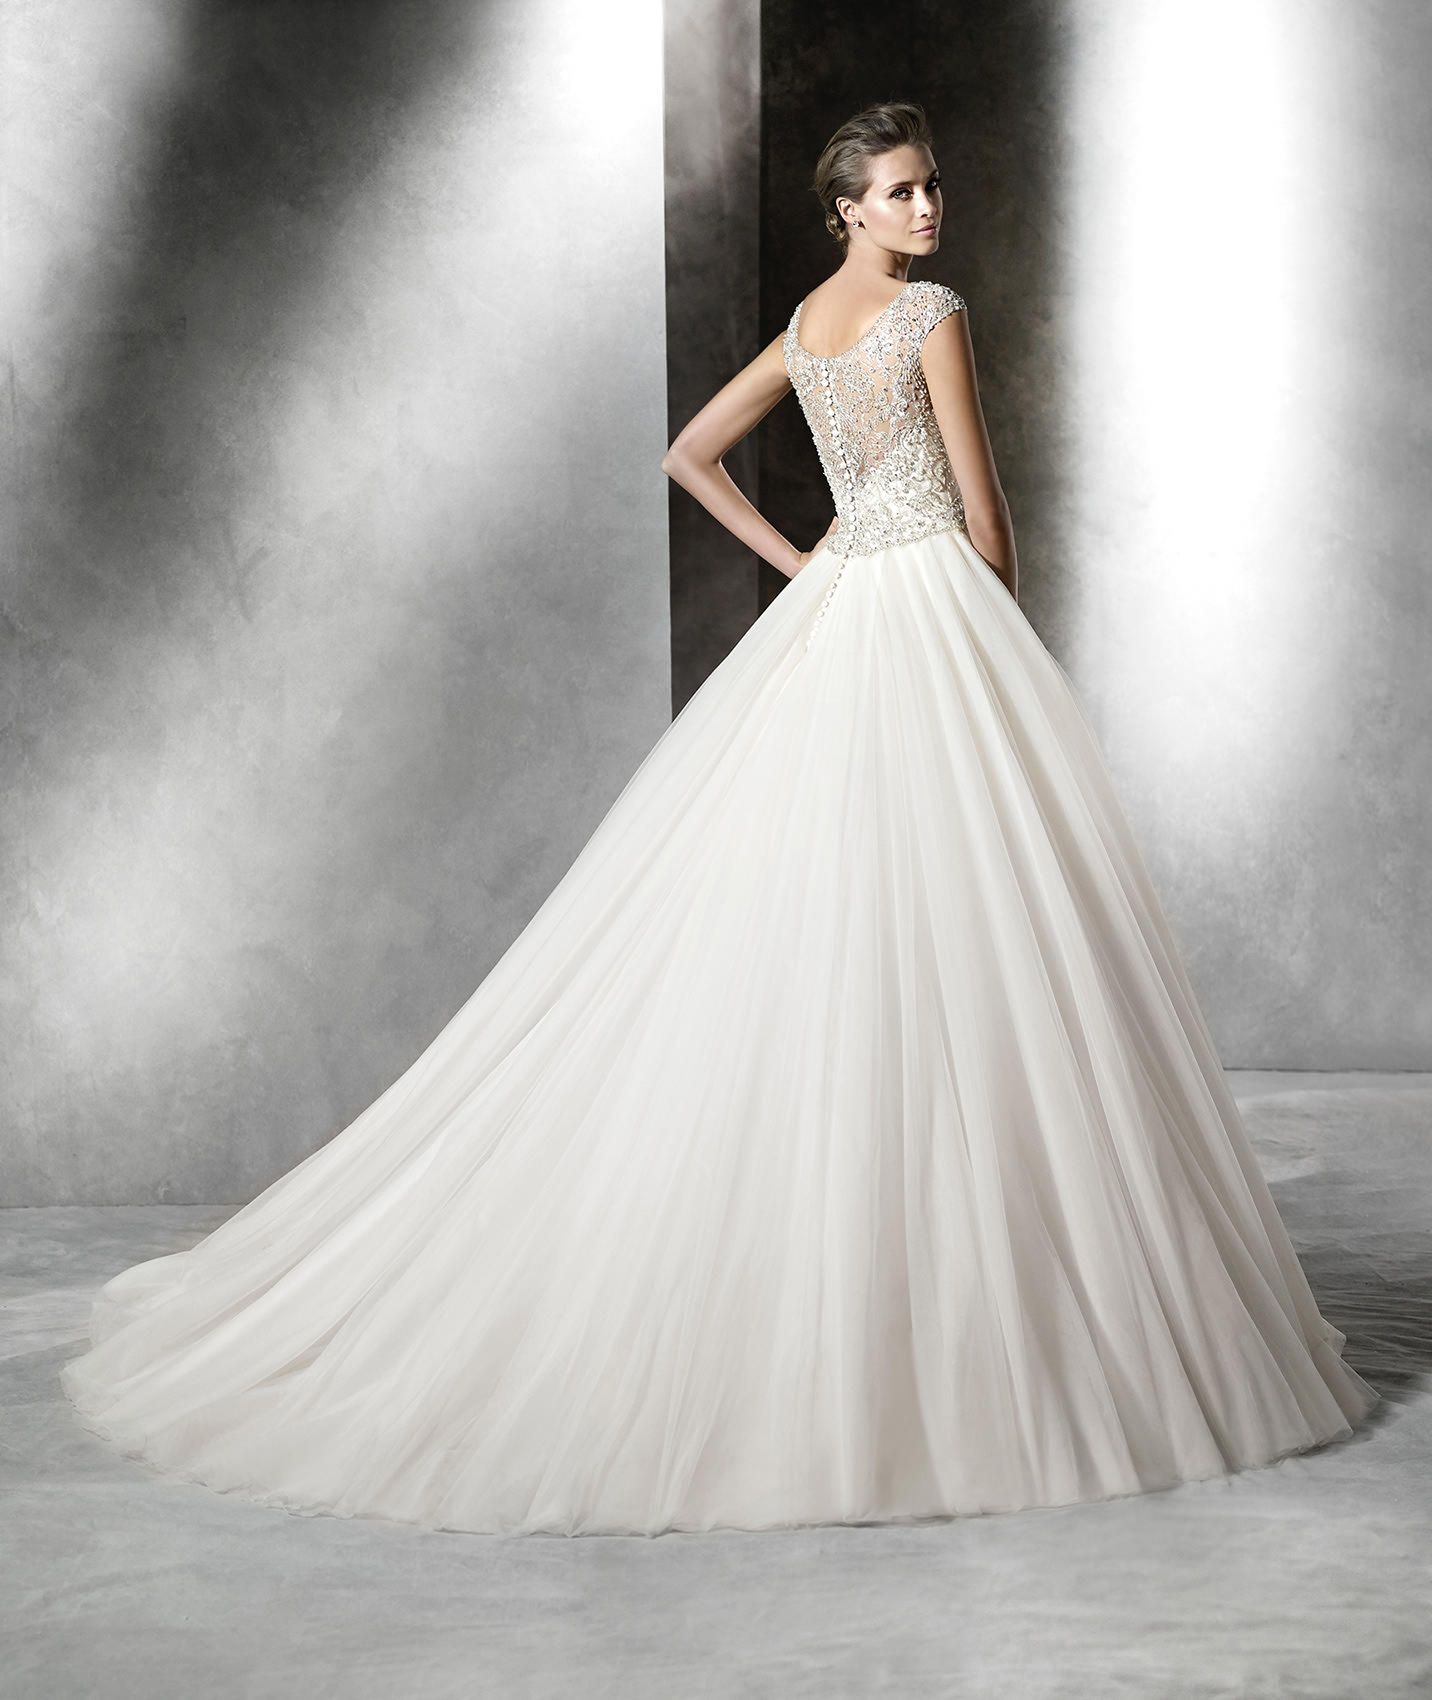 PRISMAL - Princess wedding dress with bateau neckline | Pronovias ...